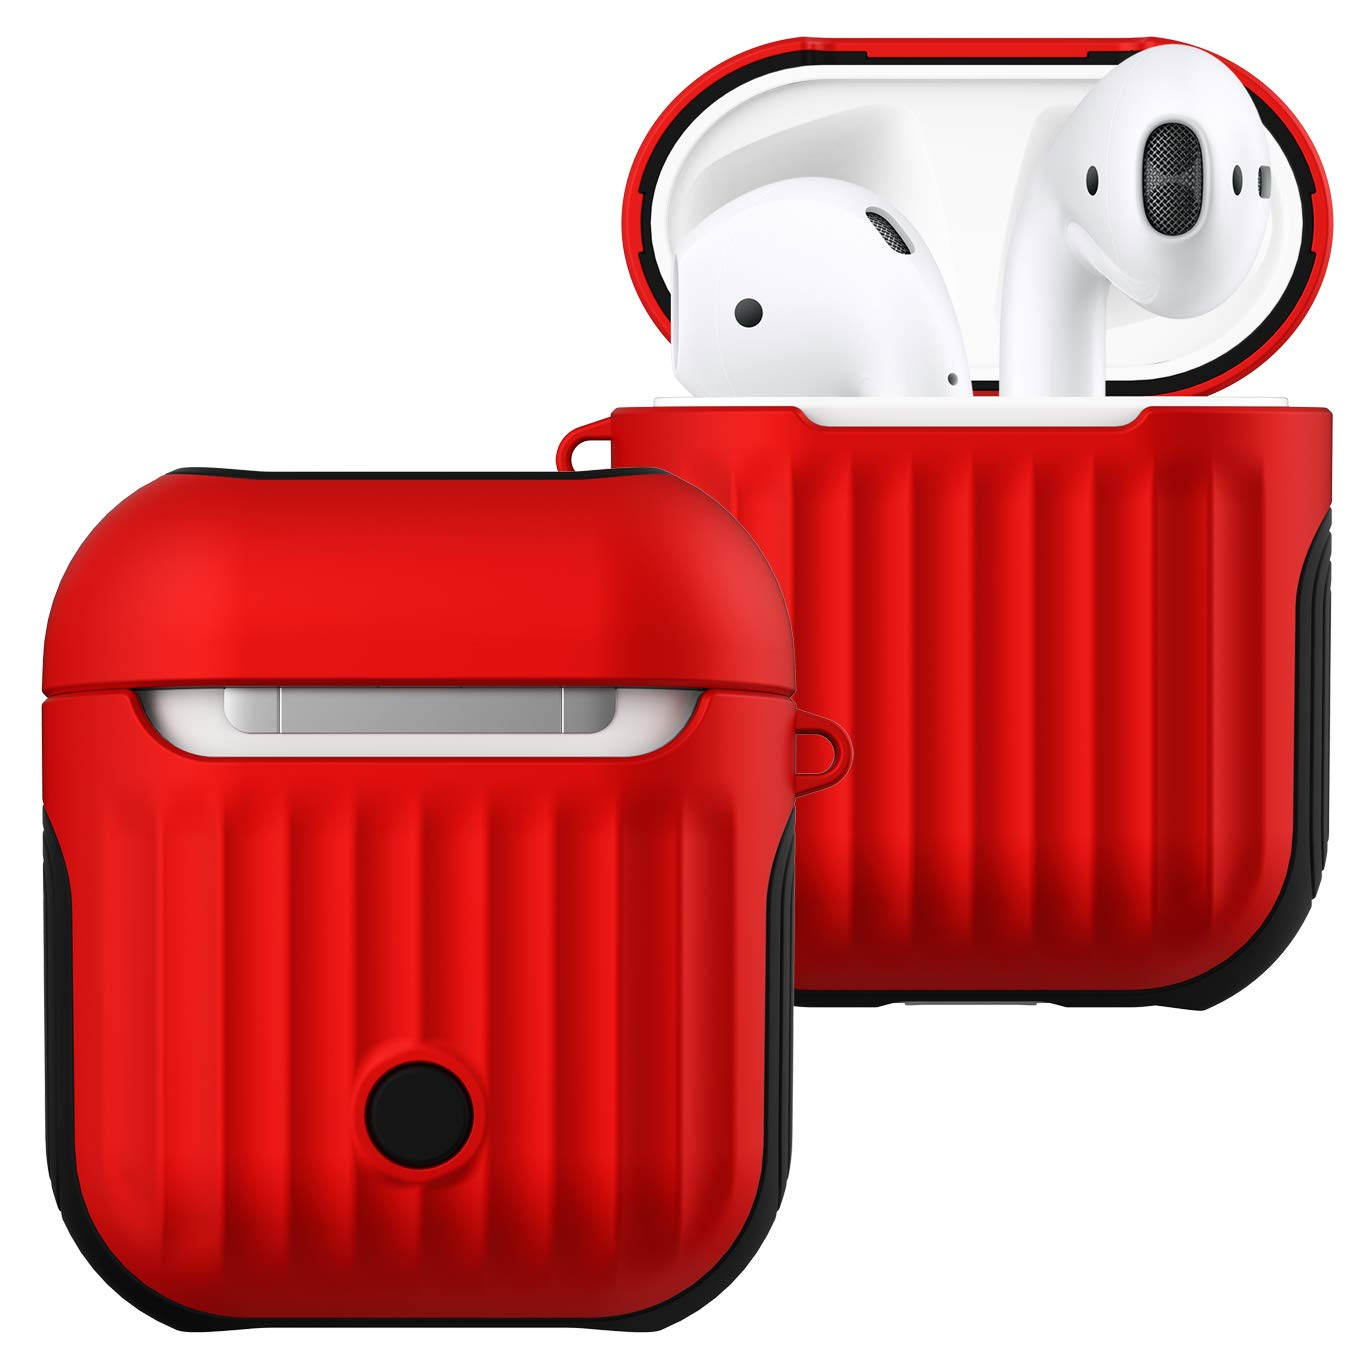 promo code aee75 1c347 AirPods Case Cover - Romozi AirPod Case with Lanyard, Compatible AirPods  2&1 Charging Case, Silicone + Hard Cover Full Protective AirPod Skins, ...